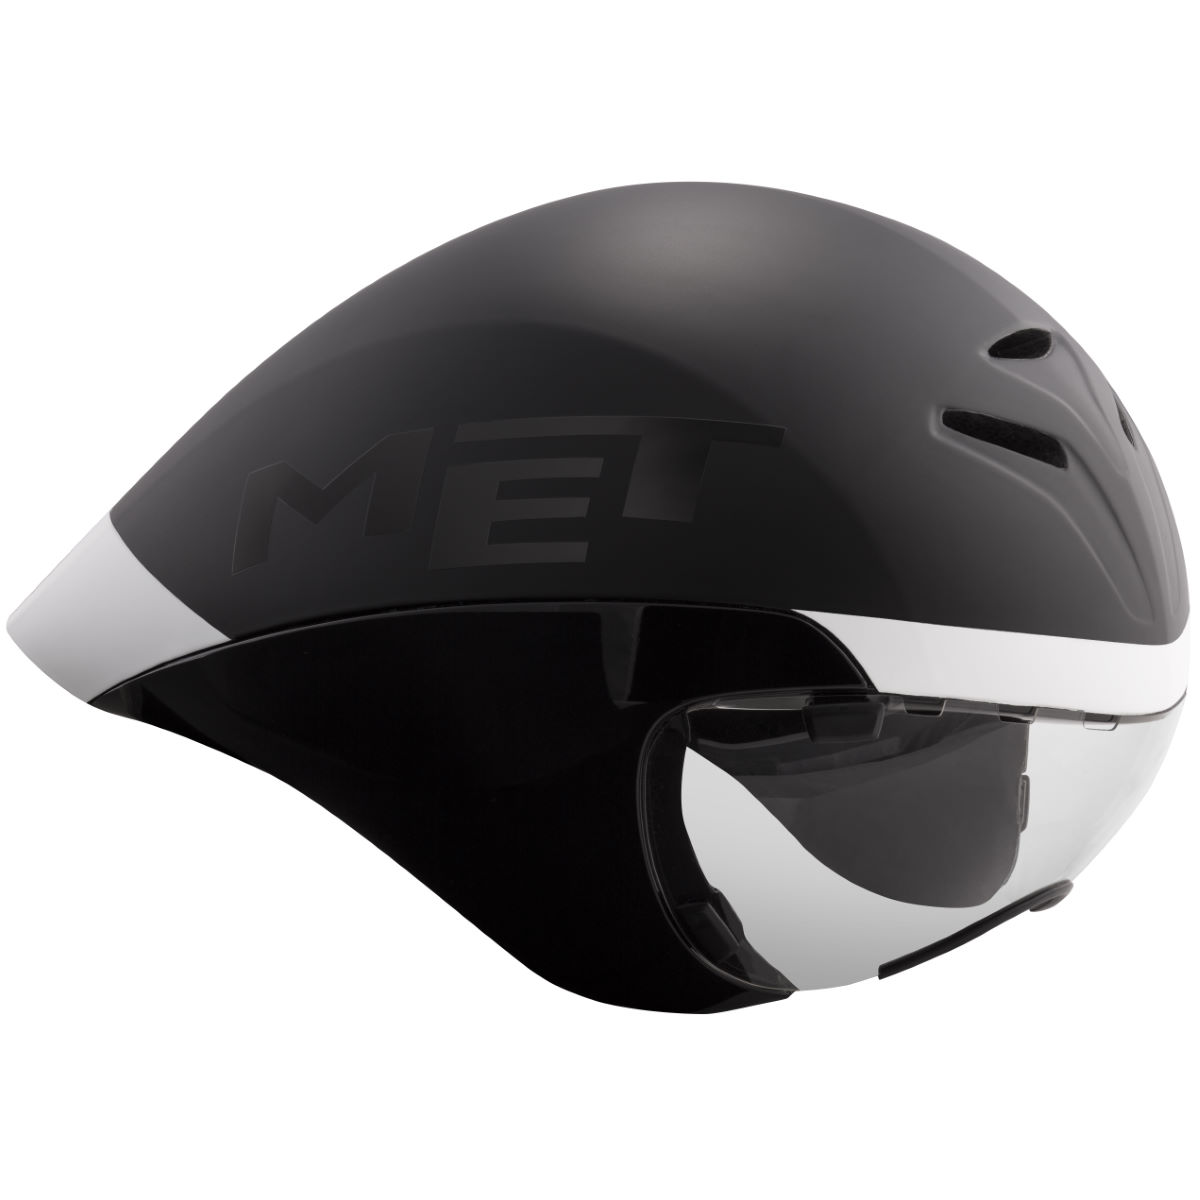 Casque MET Drone Wide Body - Medium Noir/Blanc Casques de route